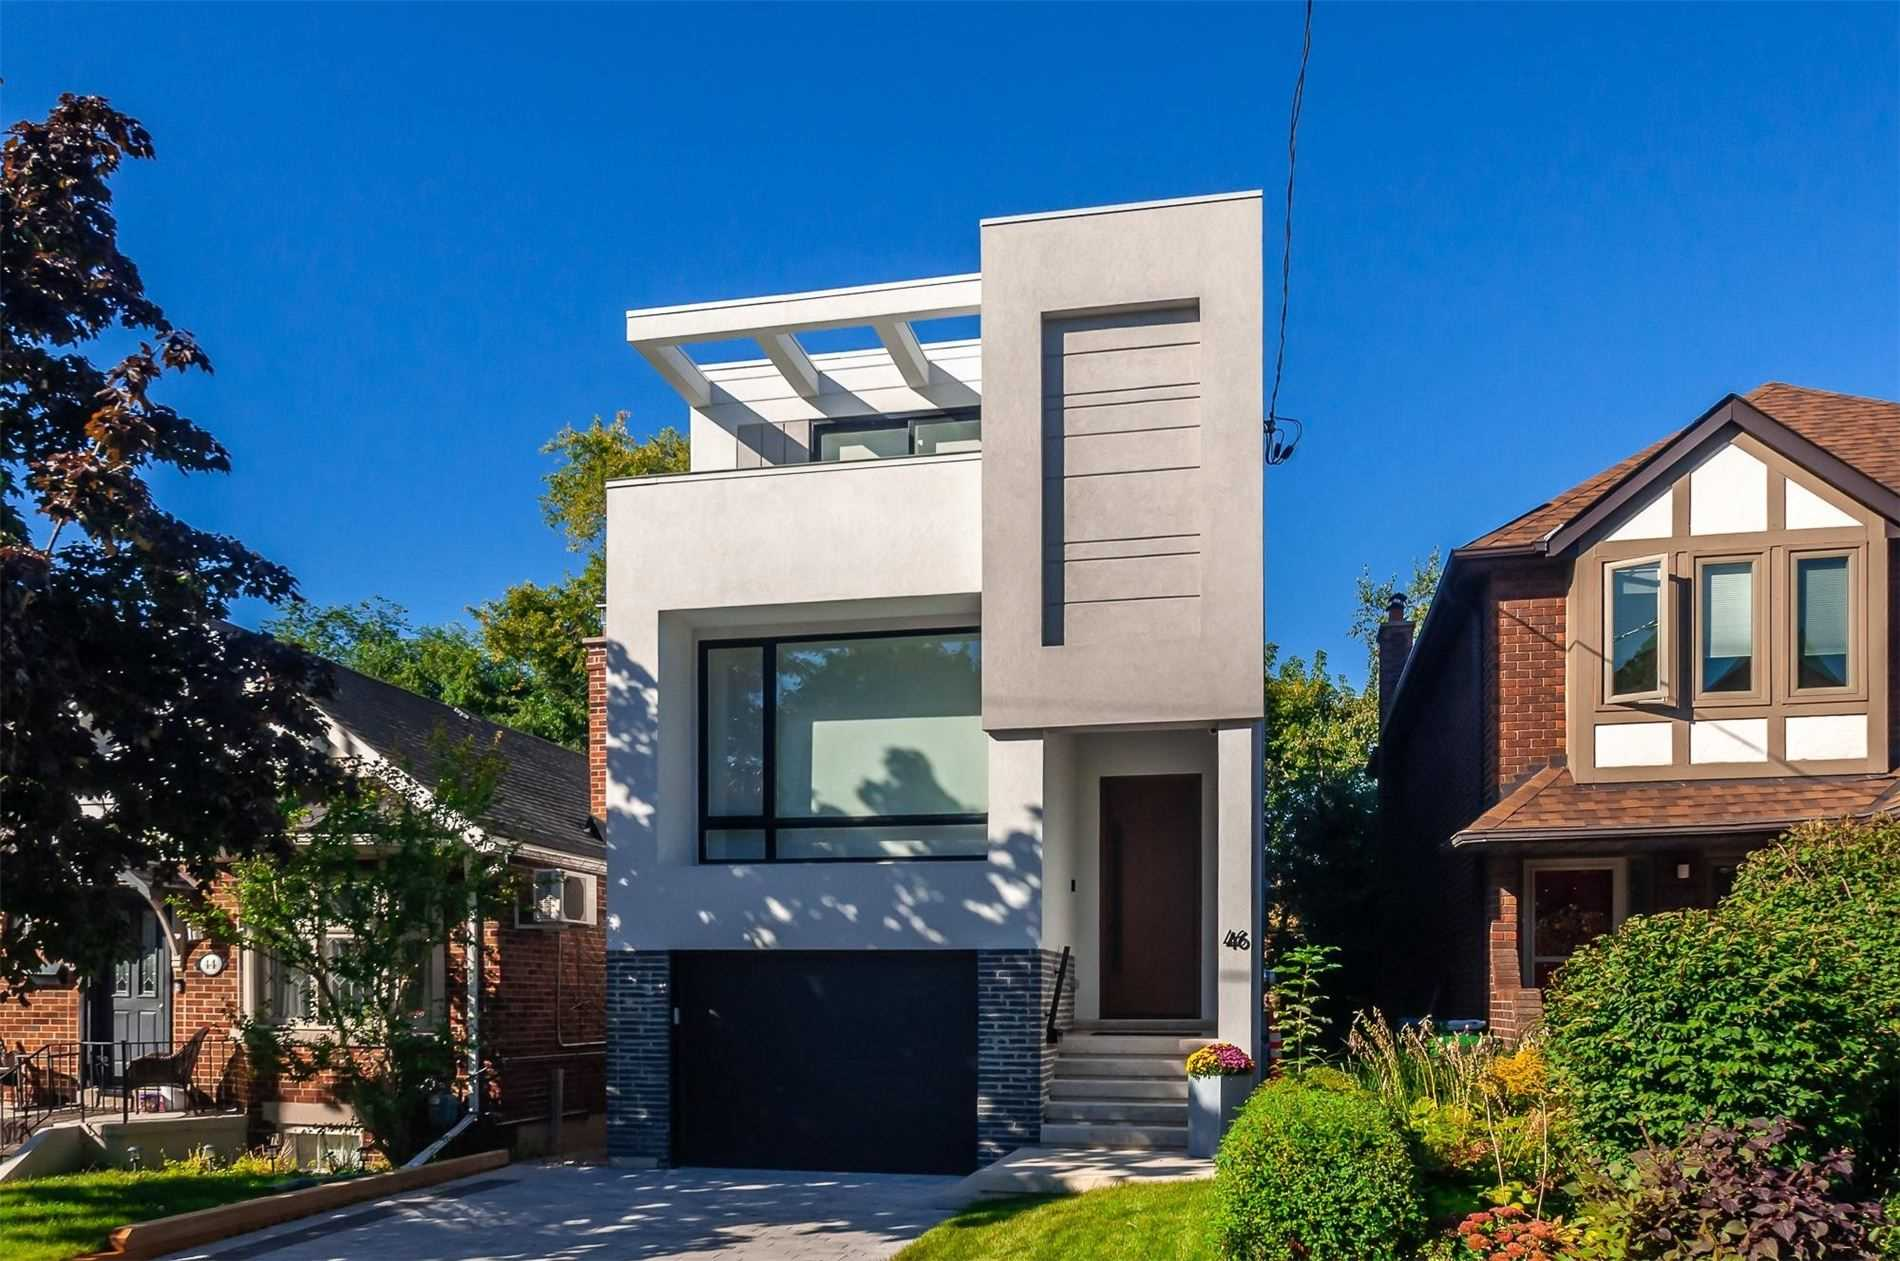 46 Beresford Ave, Toronto, Ontario M6S3A8, 3 Bedrooms Bedrooms, 6 Rooms Rooms,5 BathroomsBathrooms,Detached,For Sale,Beresford,W5377174